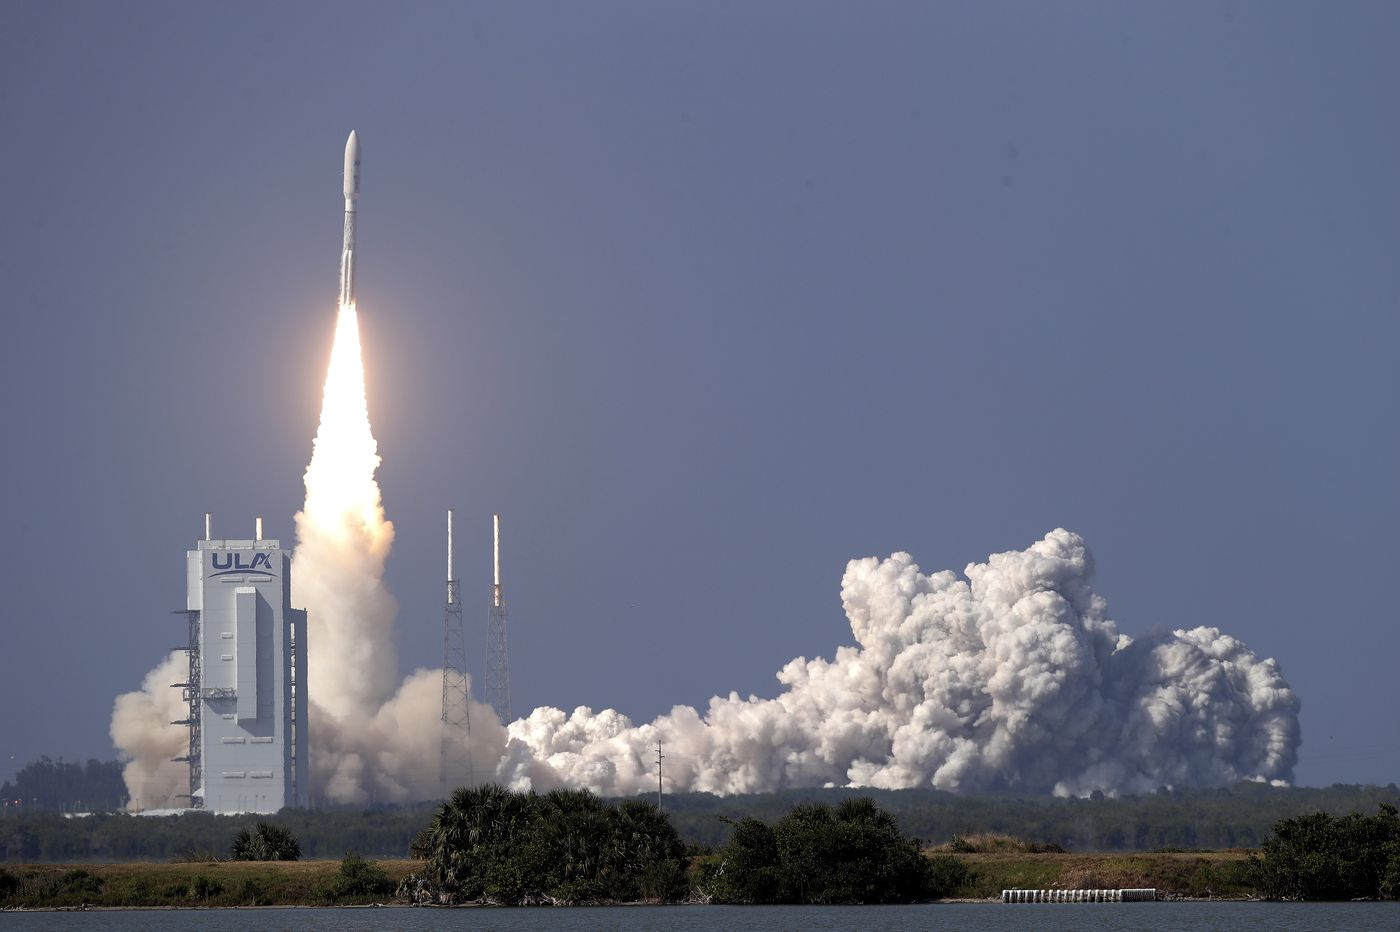 Space Force launches its 1st mission with coronavirus precautions